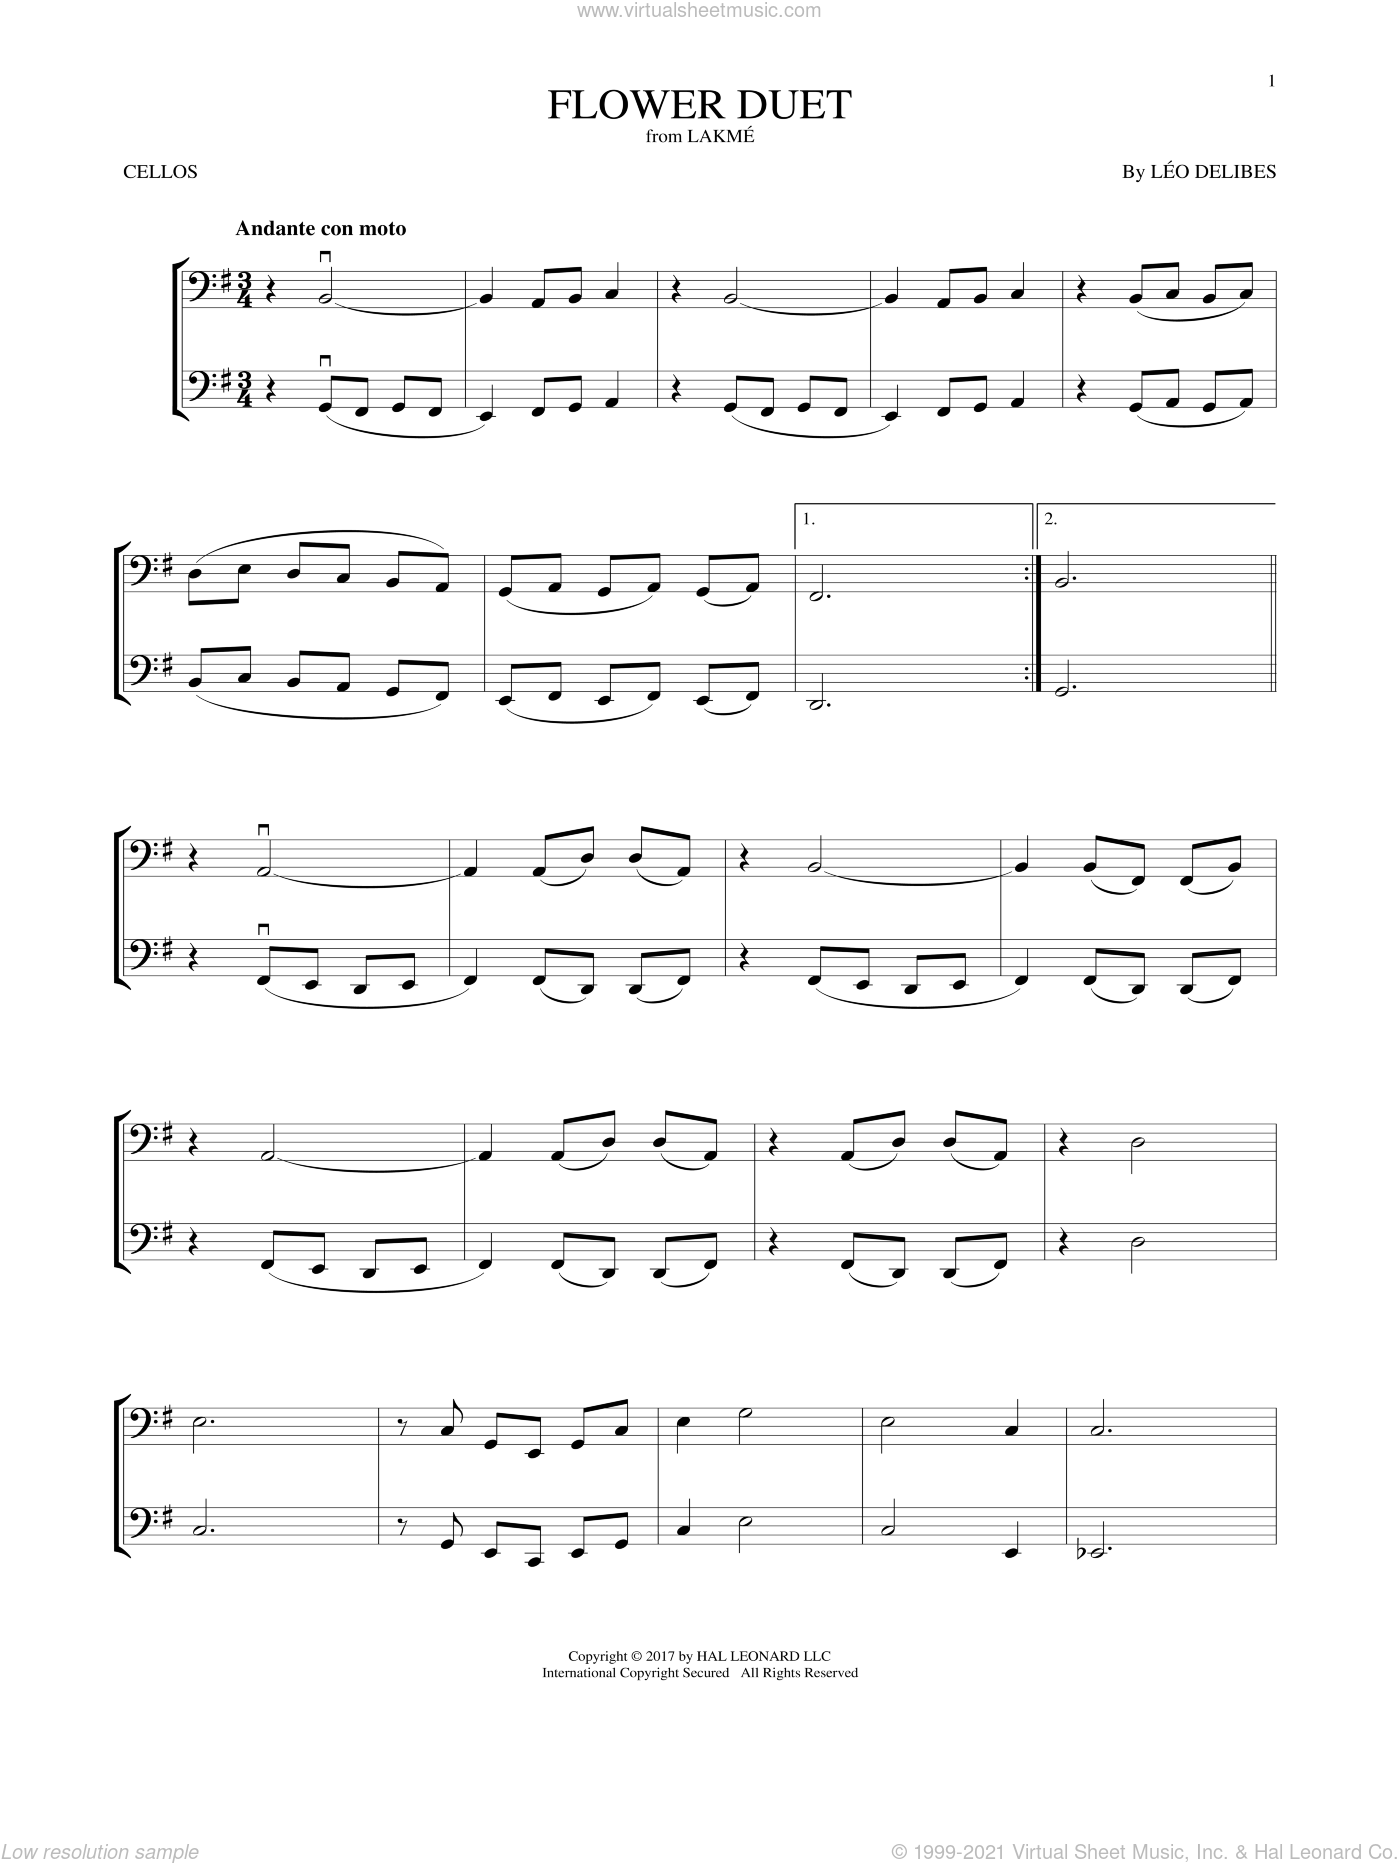 Flower Duet sheet music for two cellos (duet, duets) by Leo Delibes, classical score, intermediate skill level